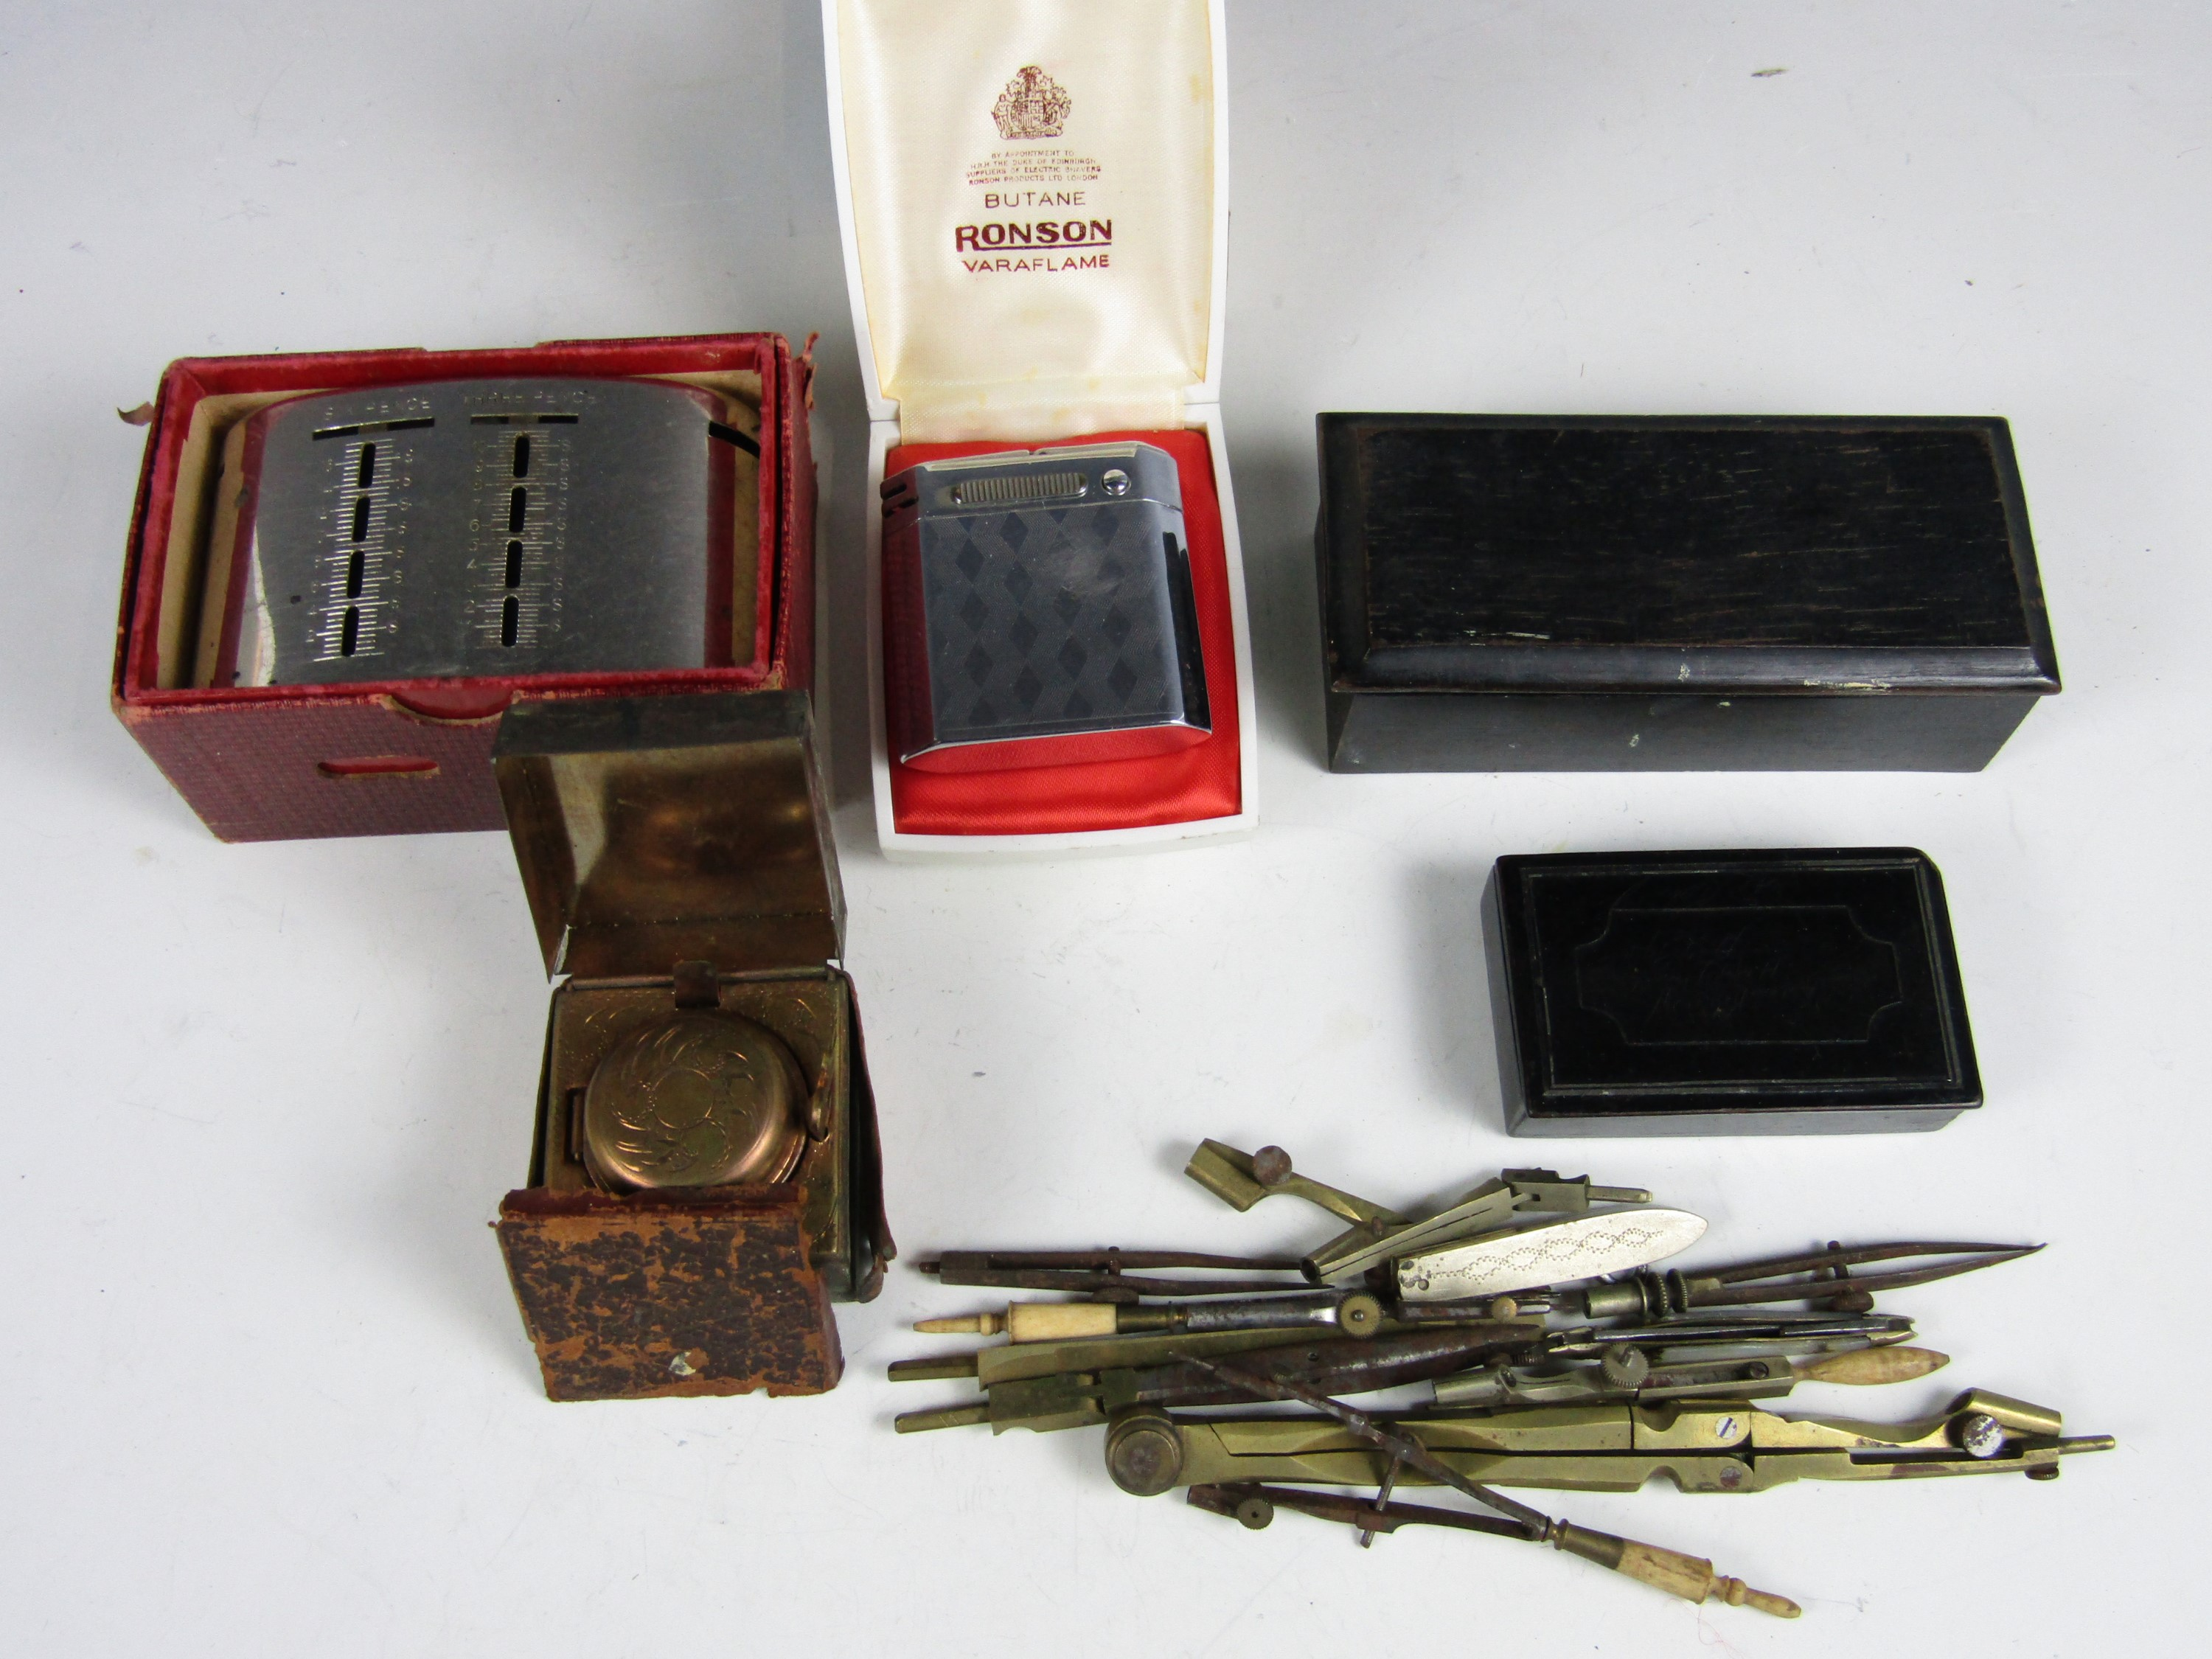 Lot 57 - Sundry collectors' items including a boxed Ronson Varaflame cigarette lighter, a Victorian snuff